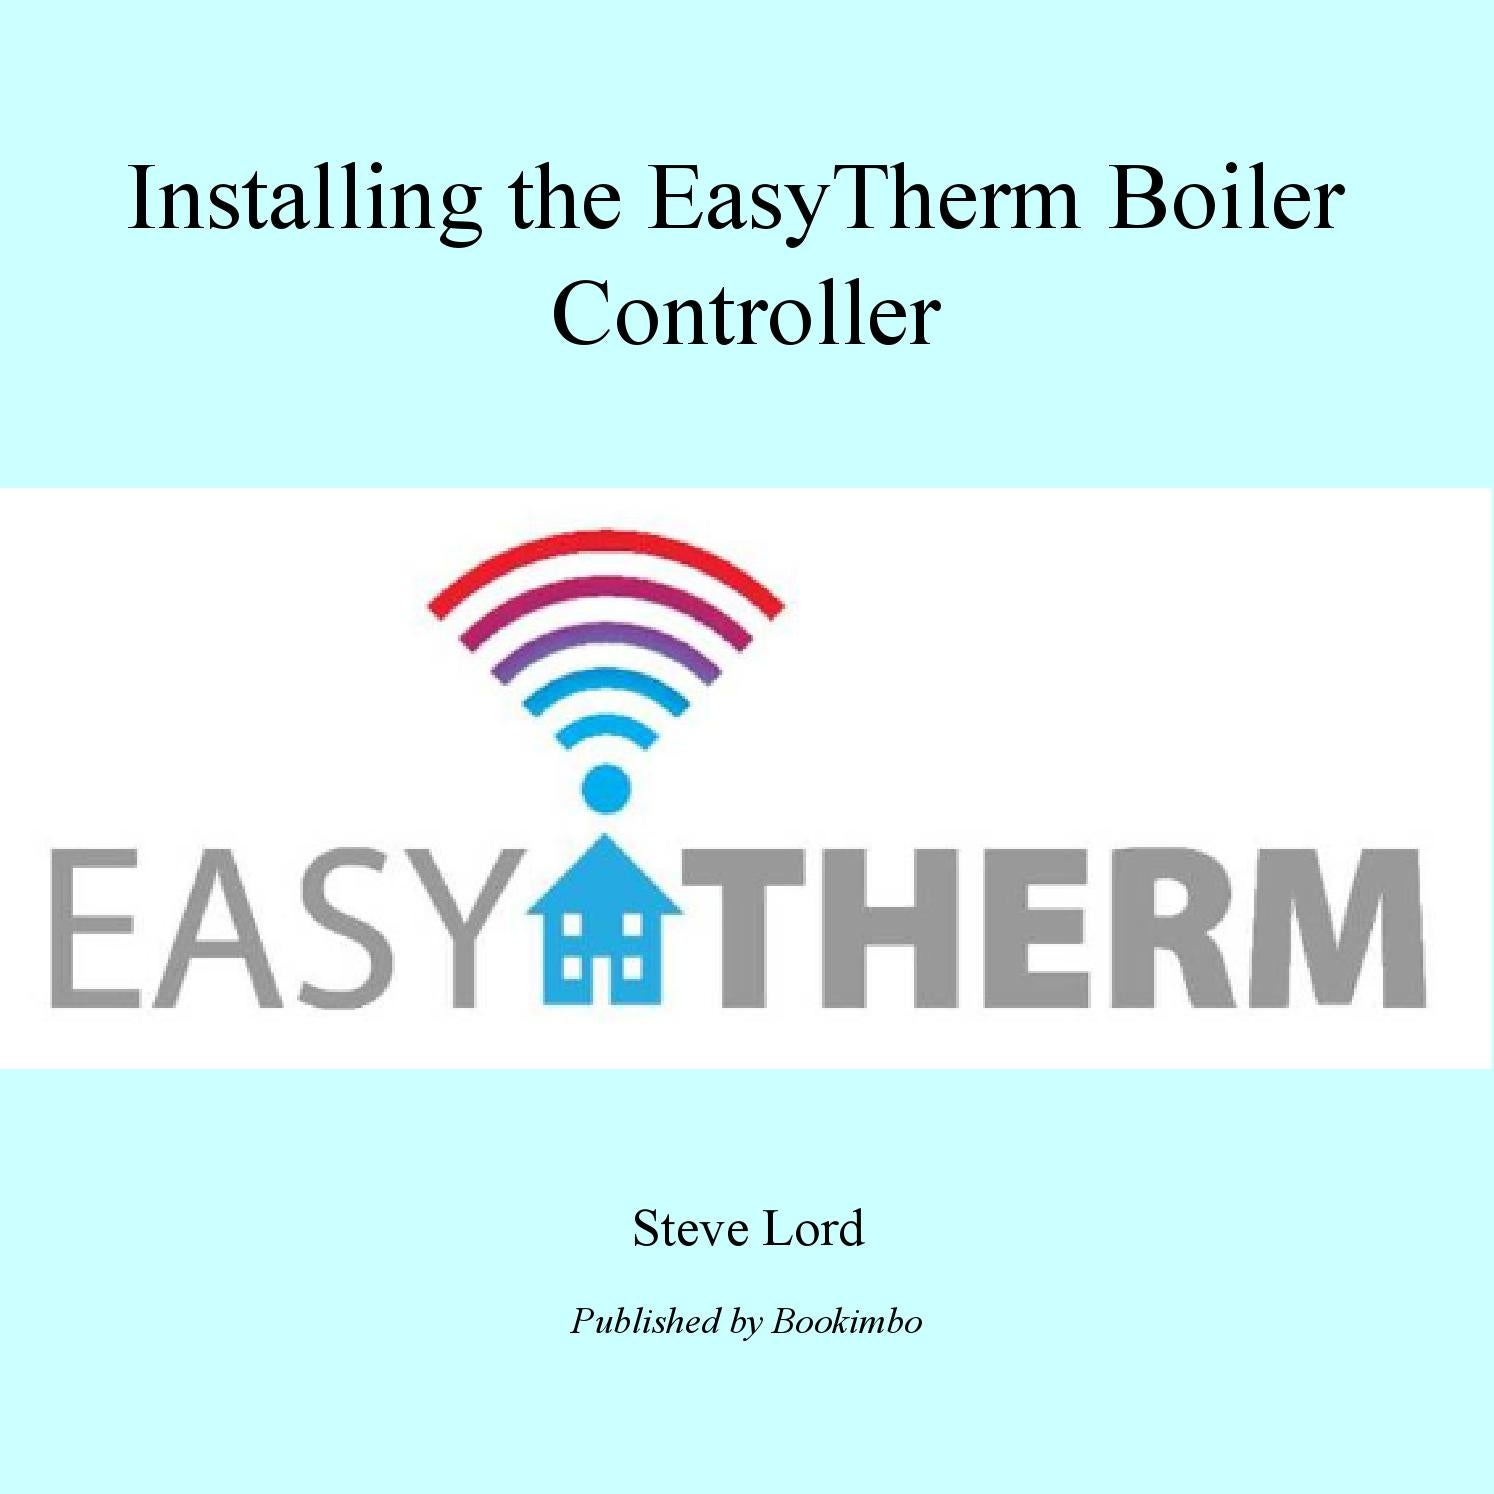 Installing the easytherm boiler controller by TuanNguyen - issuu